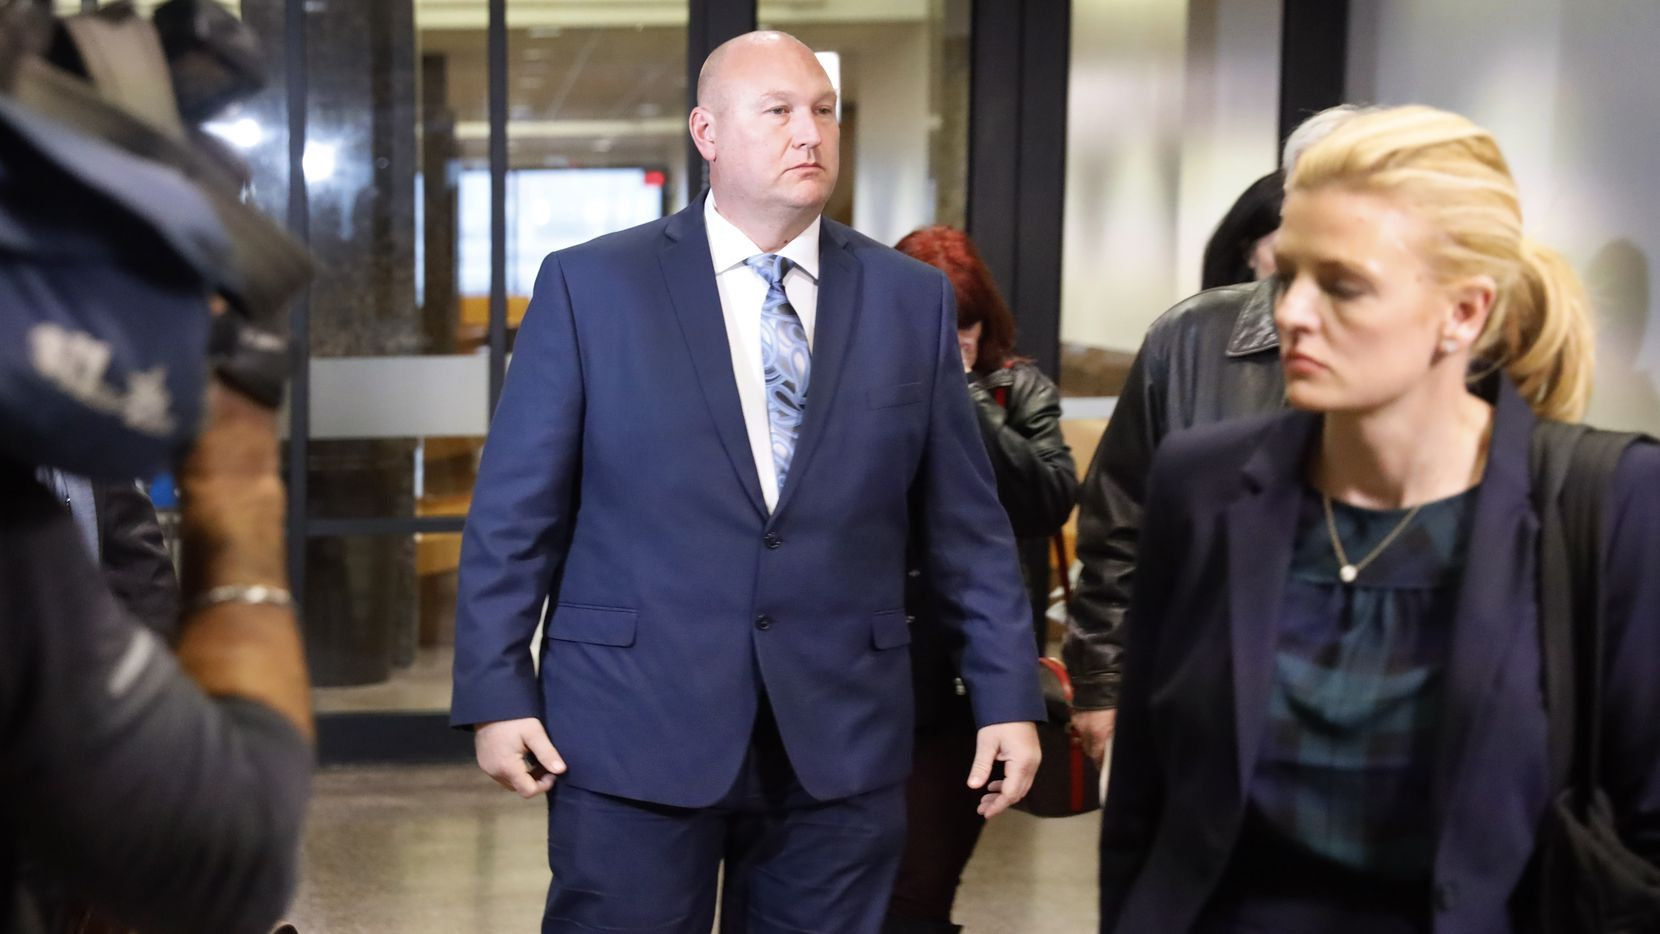 Former Dallas police officer Christopher Hess (center) leaves the Frank Crowley Courts Building in Dallas with his attorneys, Tuesday, February 11, 2020. The jury was in deliberation after closing arguments the afternoon. He's accused of the 2017 fatal shooting of 21-year-old Genevive Dawes. (Tom Fox/The Dallas Morning News)